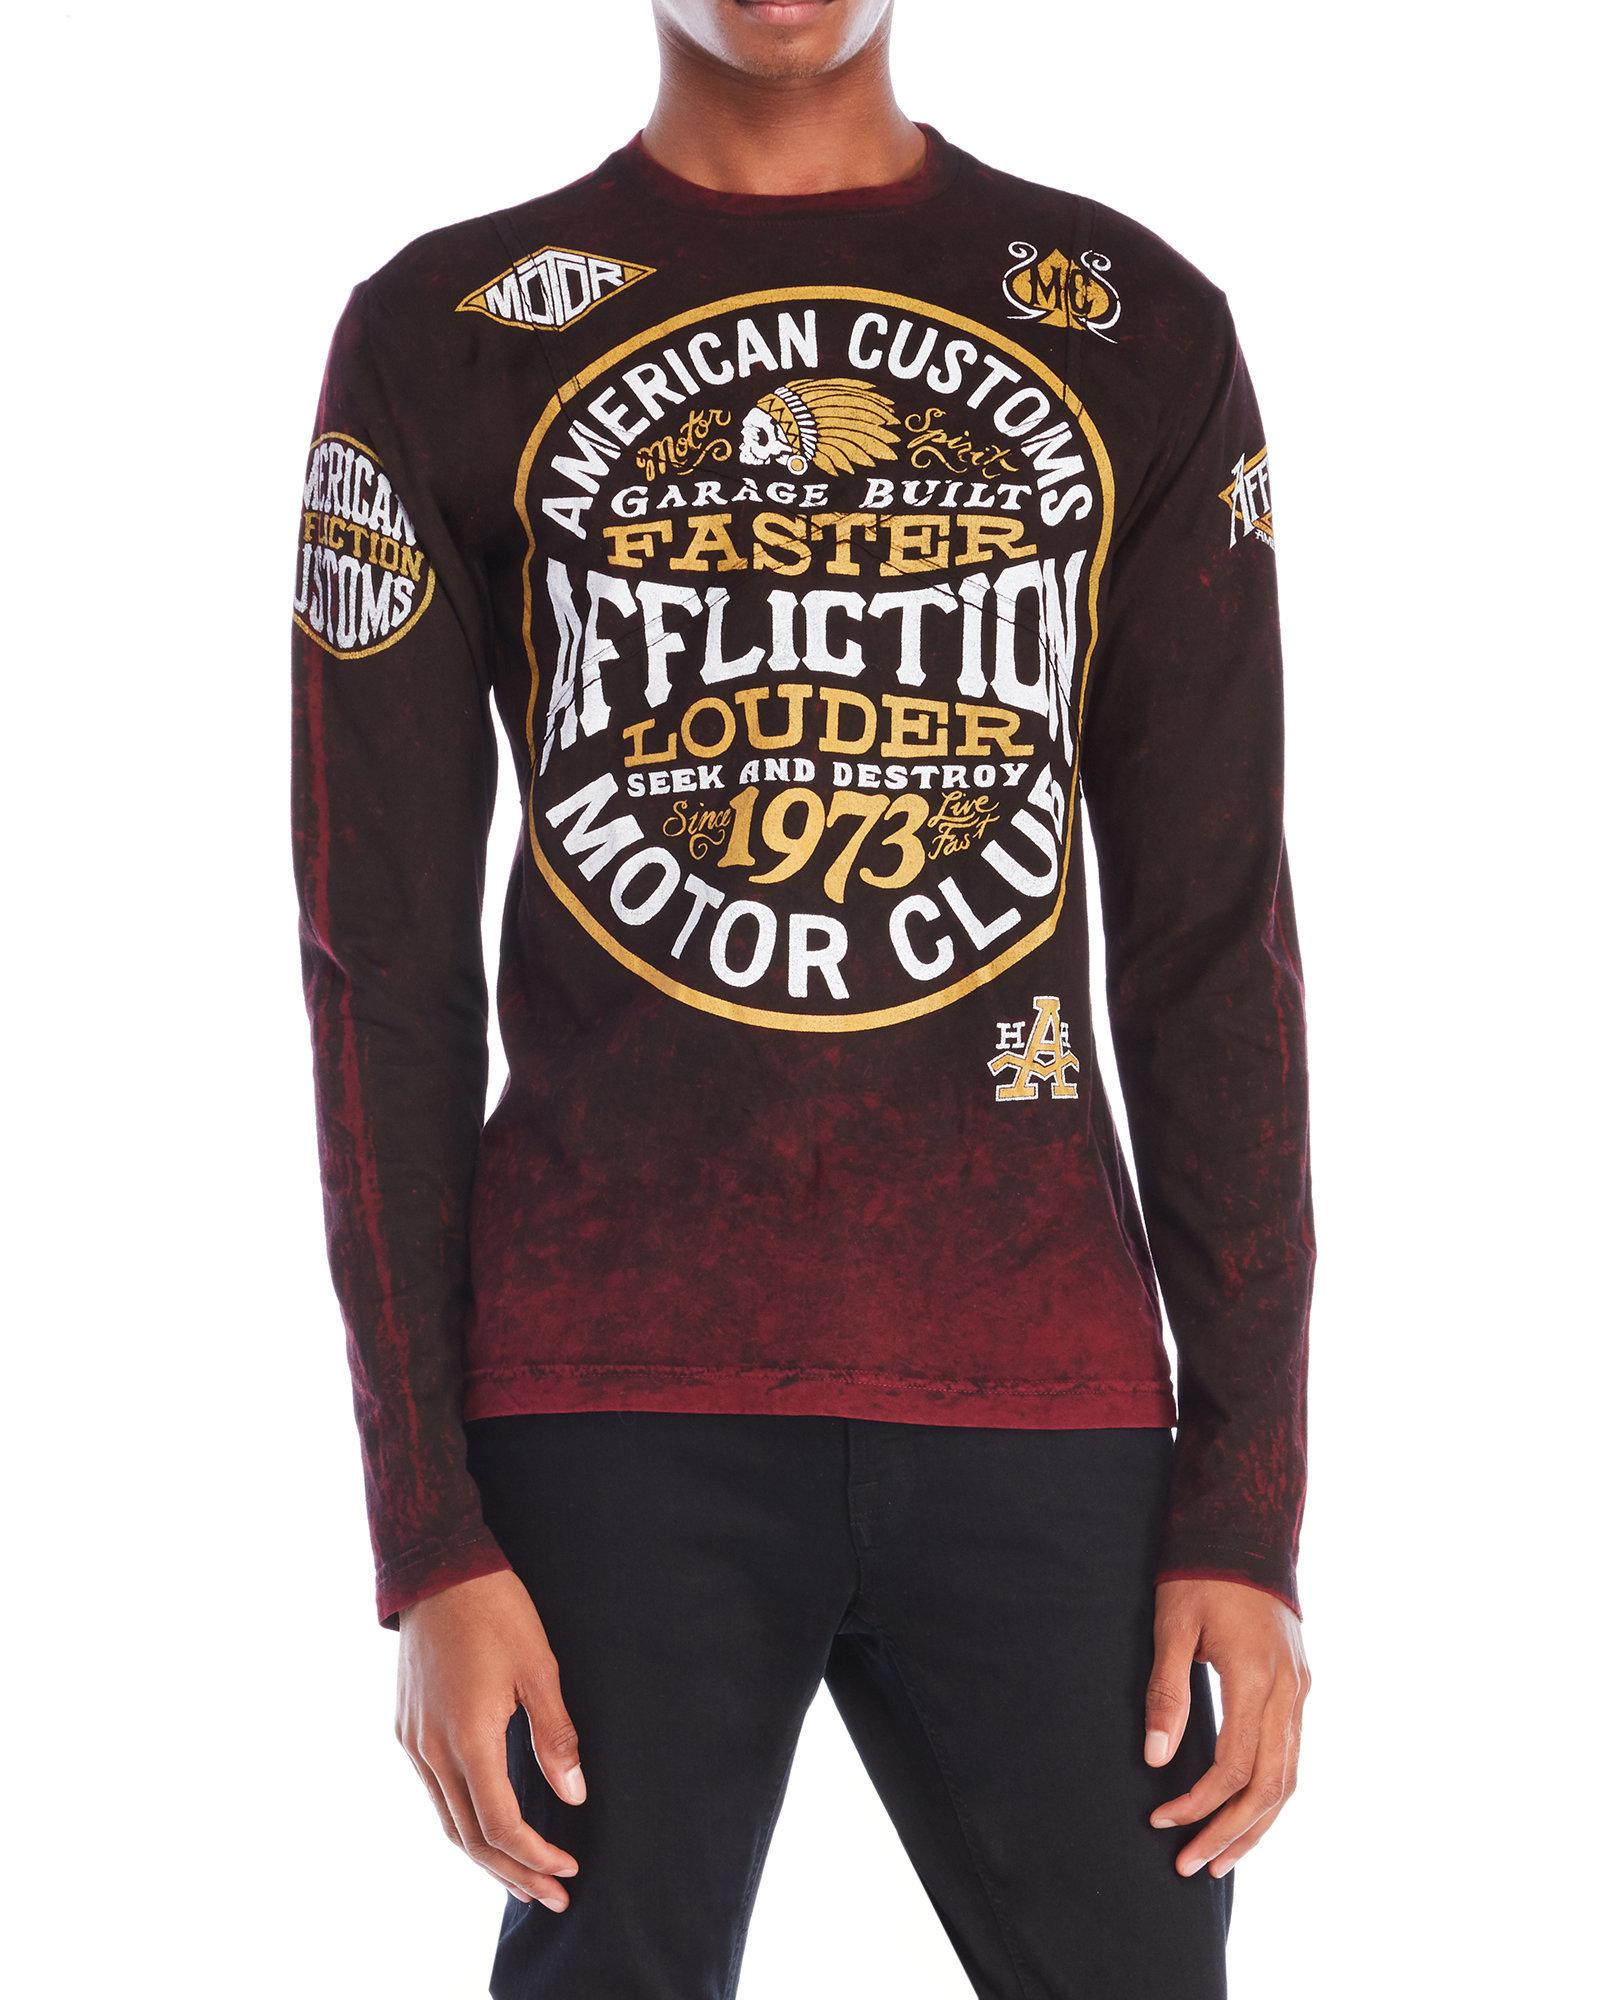 Lyst - Affliction American Customs Long Sleeve Tee for Men